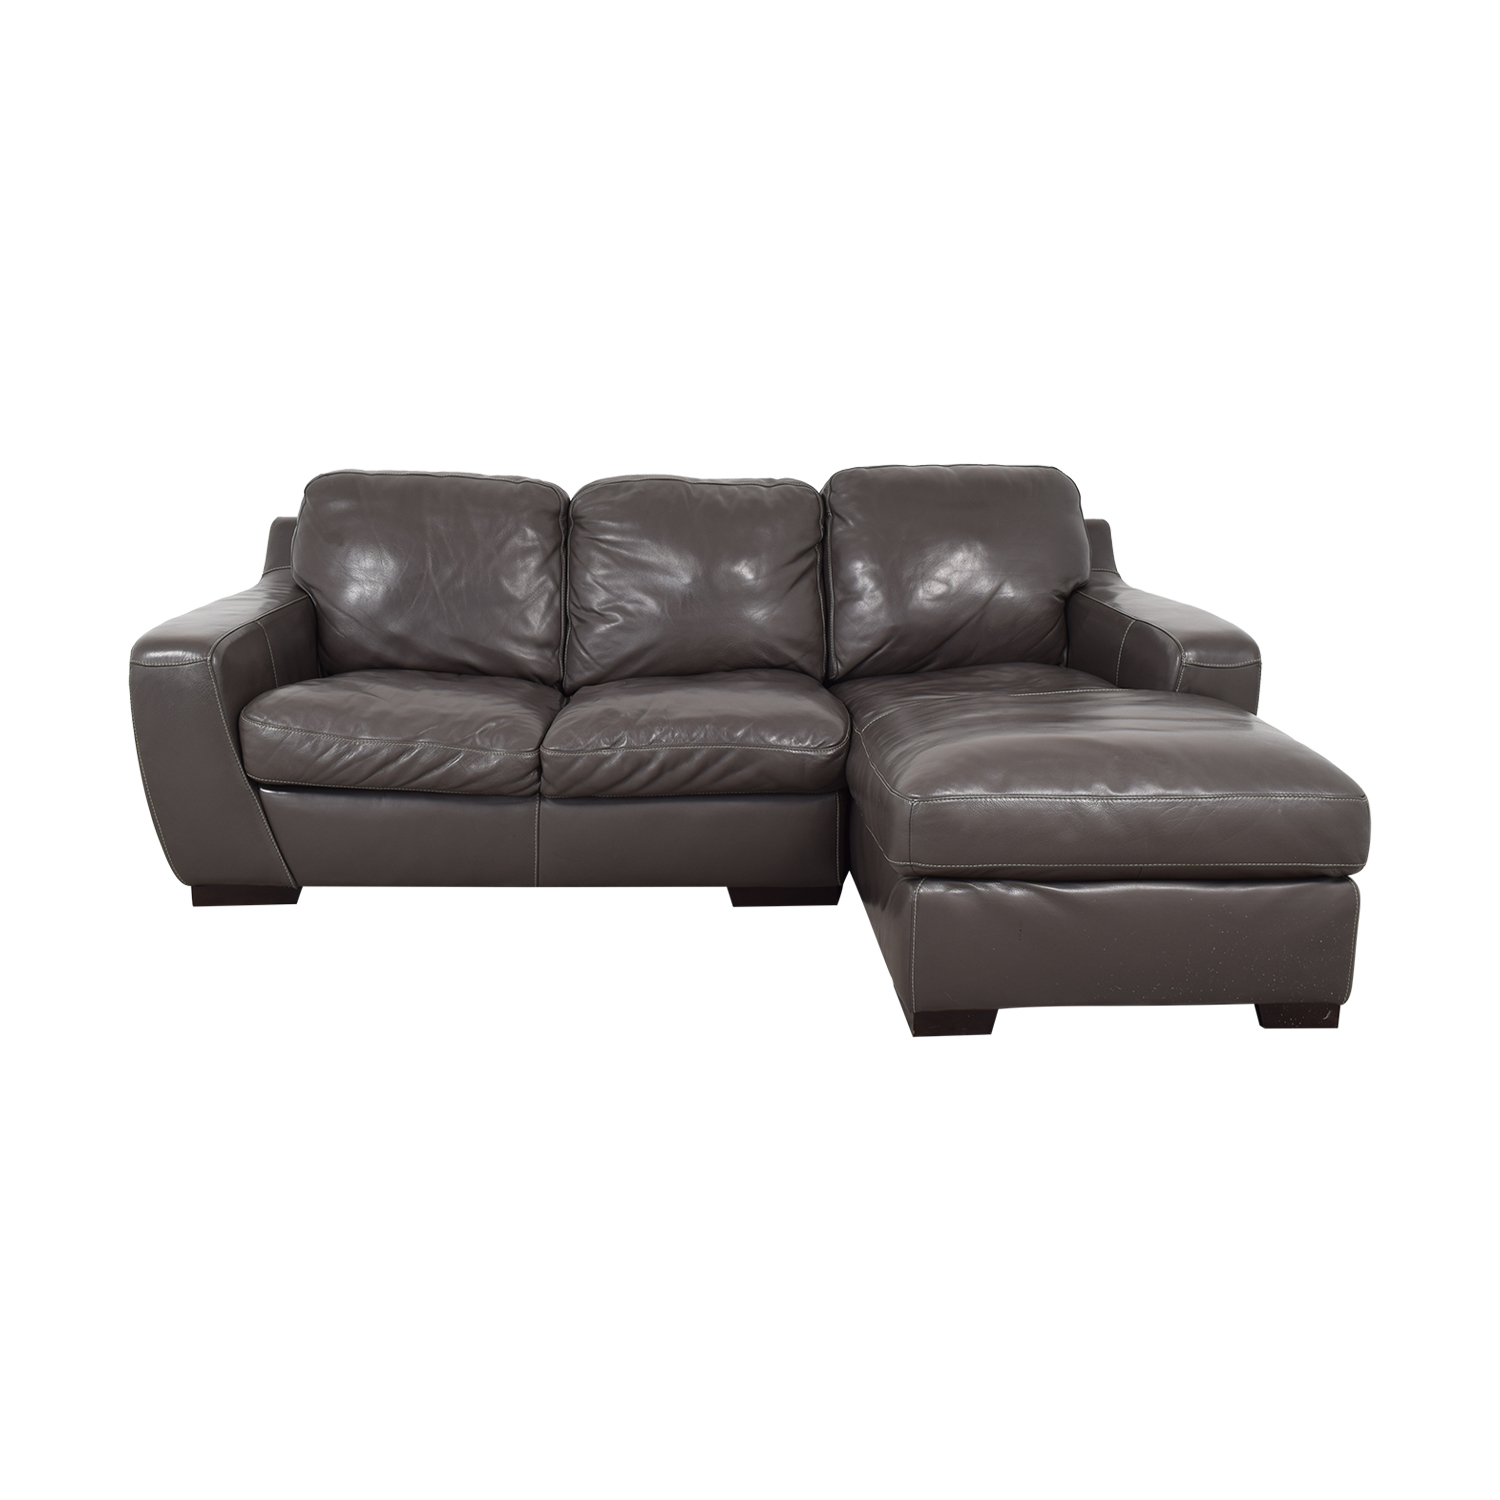 Raymour & Flanigan Raymour & Flanigan Stone Chaise Sectional used